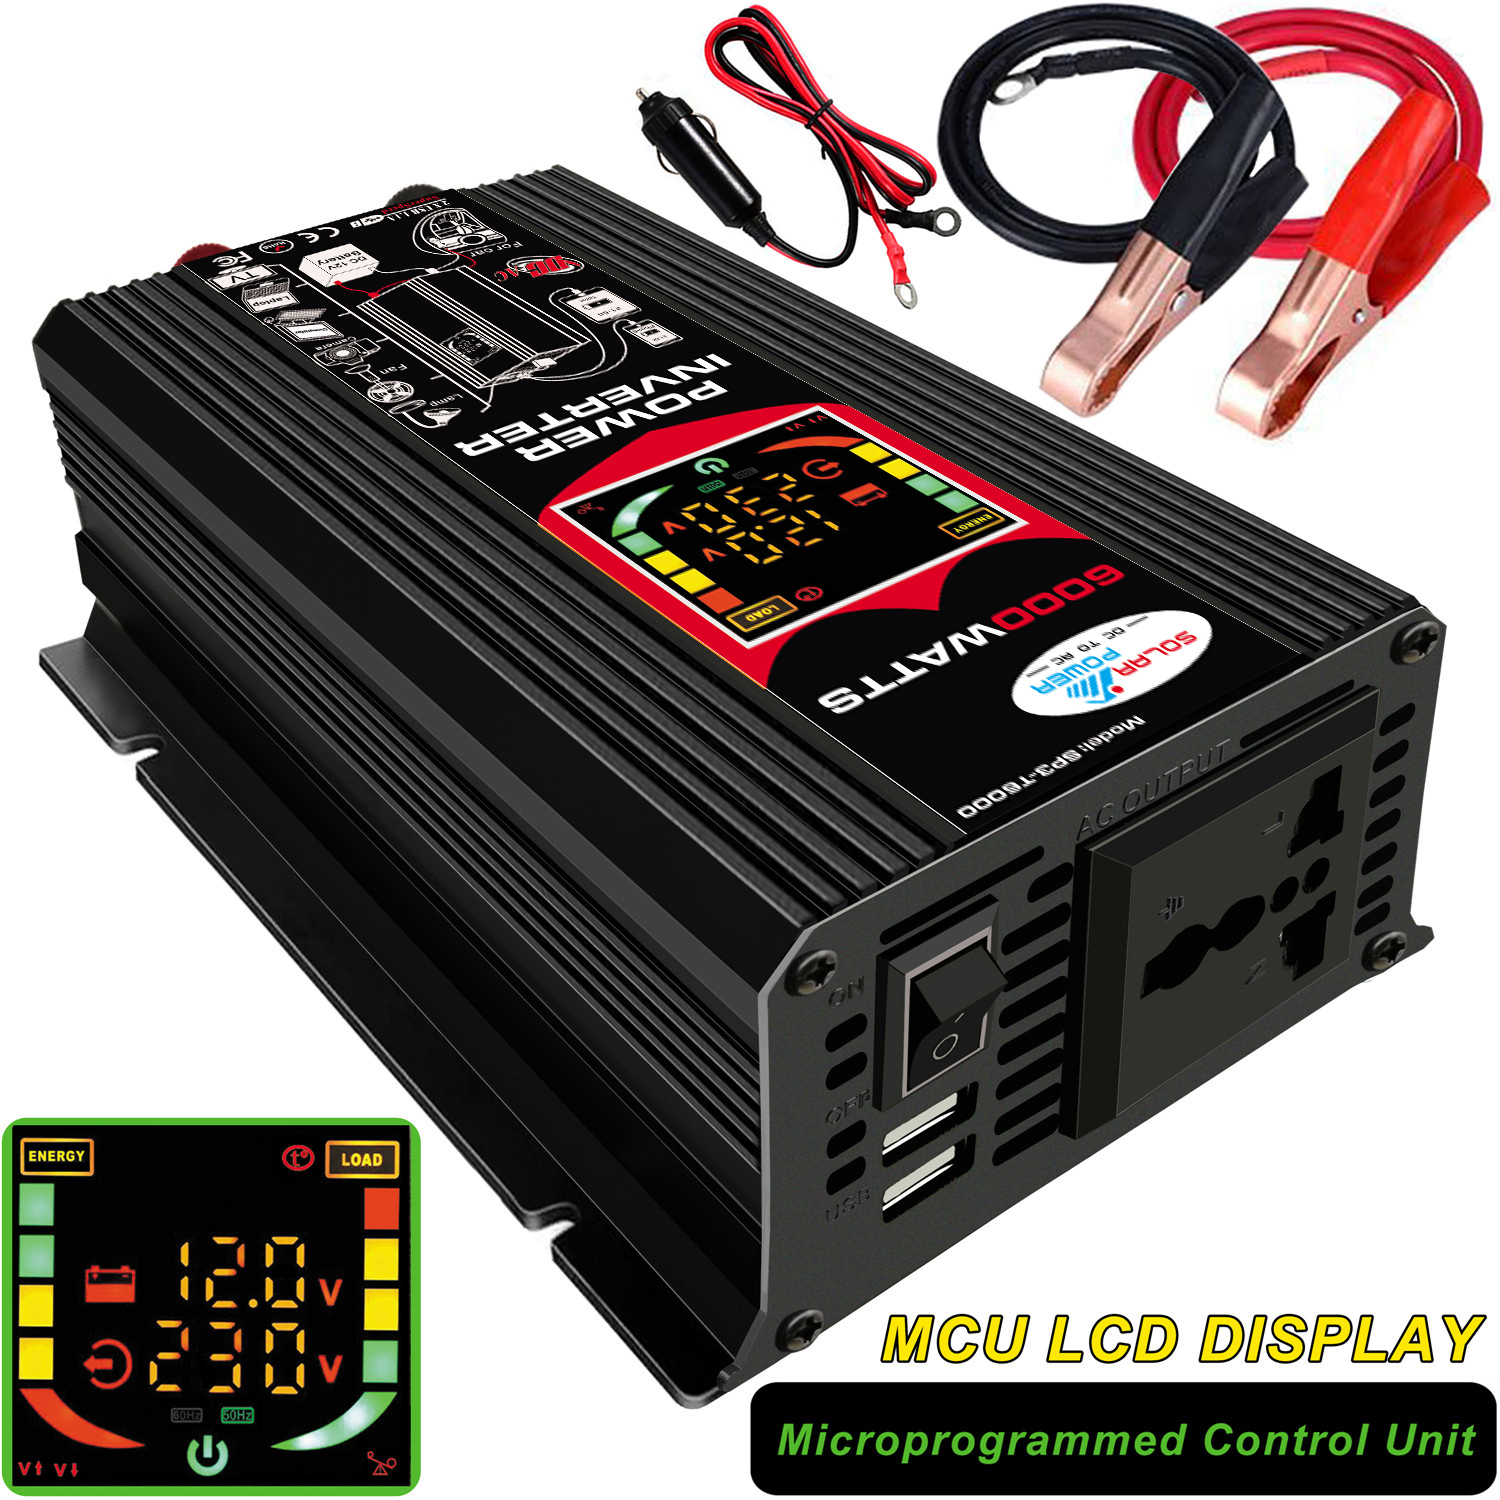 6000W Dual USB Smart Display Car Power Inverter Converter Adapter 12V To 220V/110V Voltage Transformer Modified Sine Wave